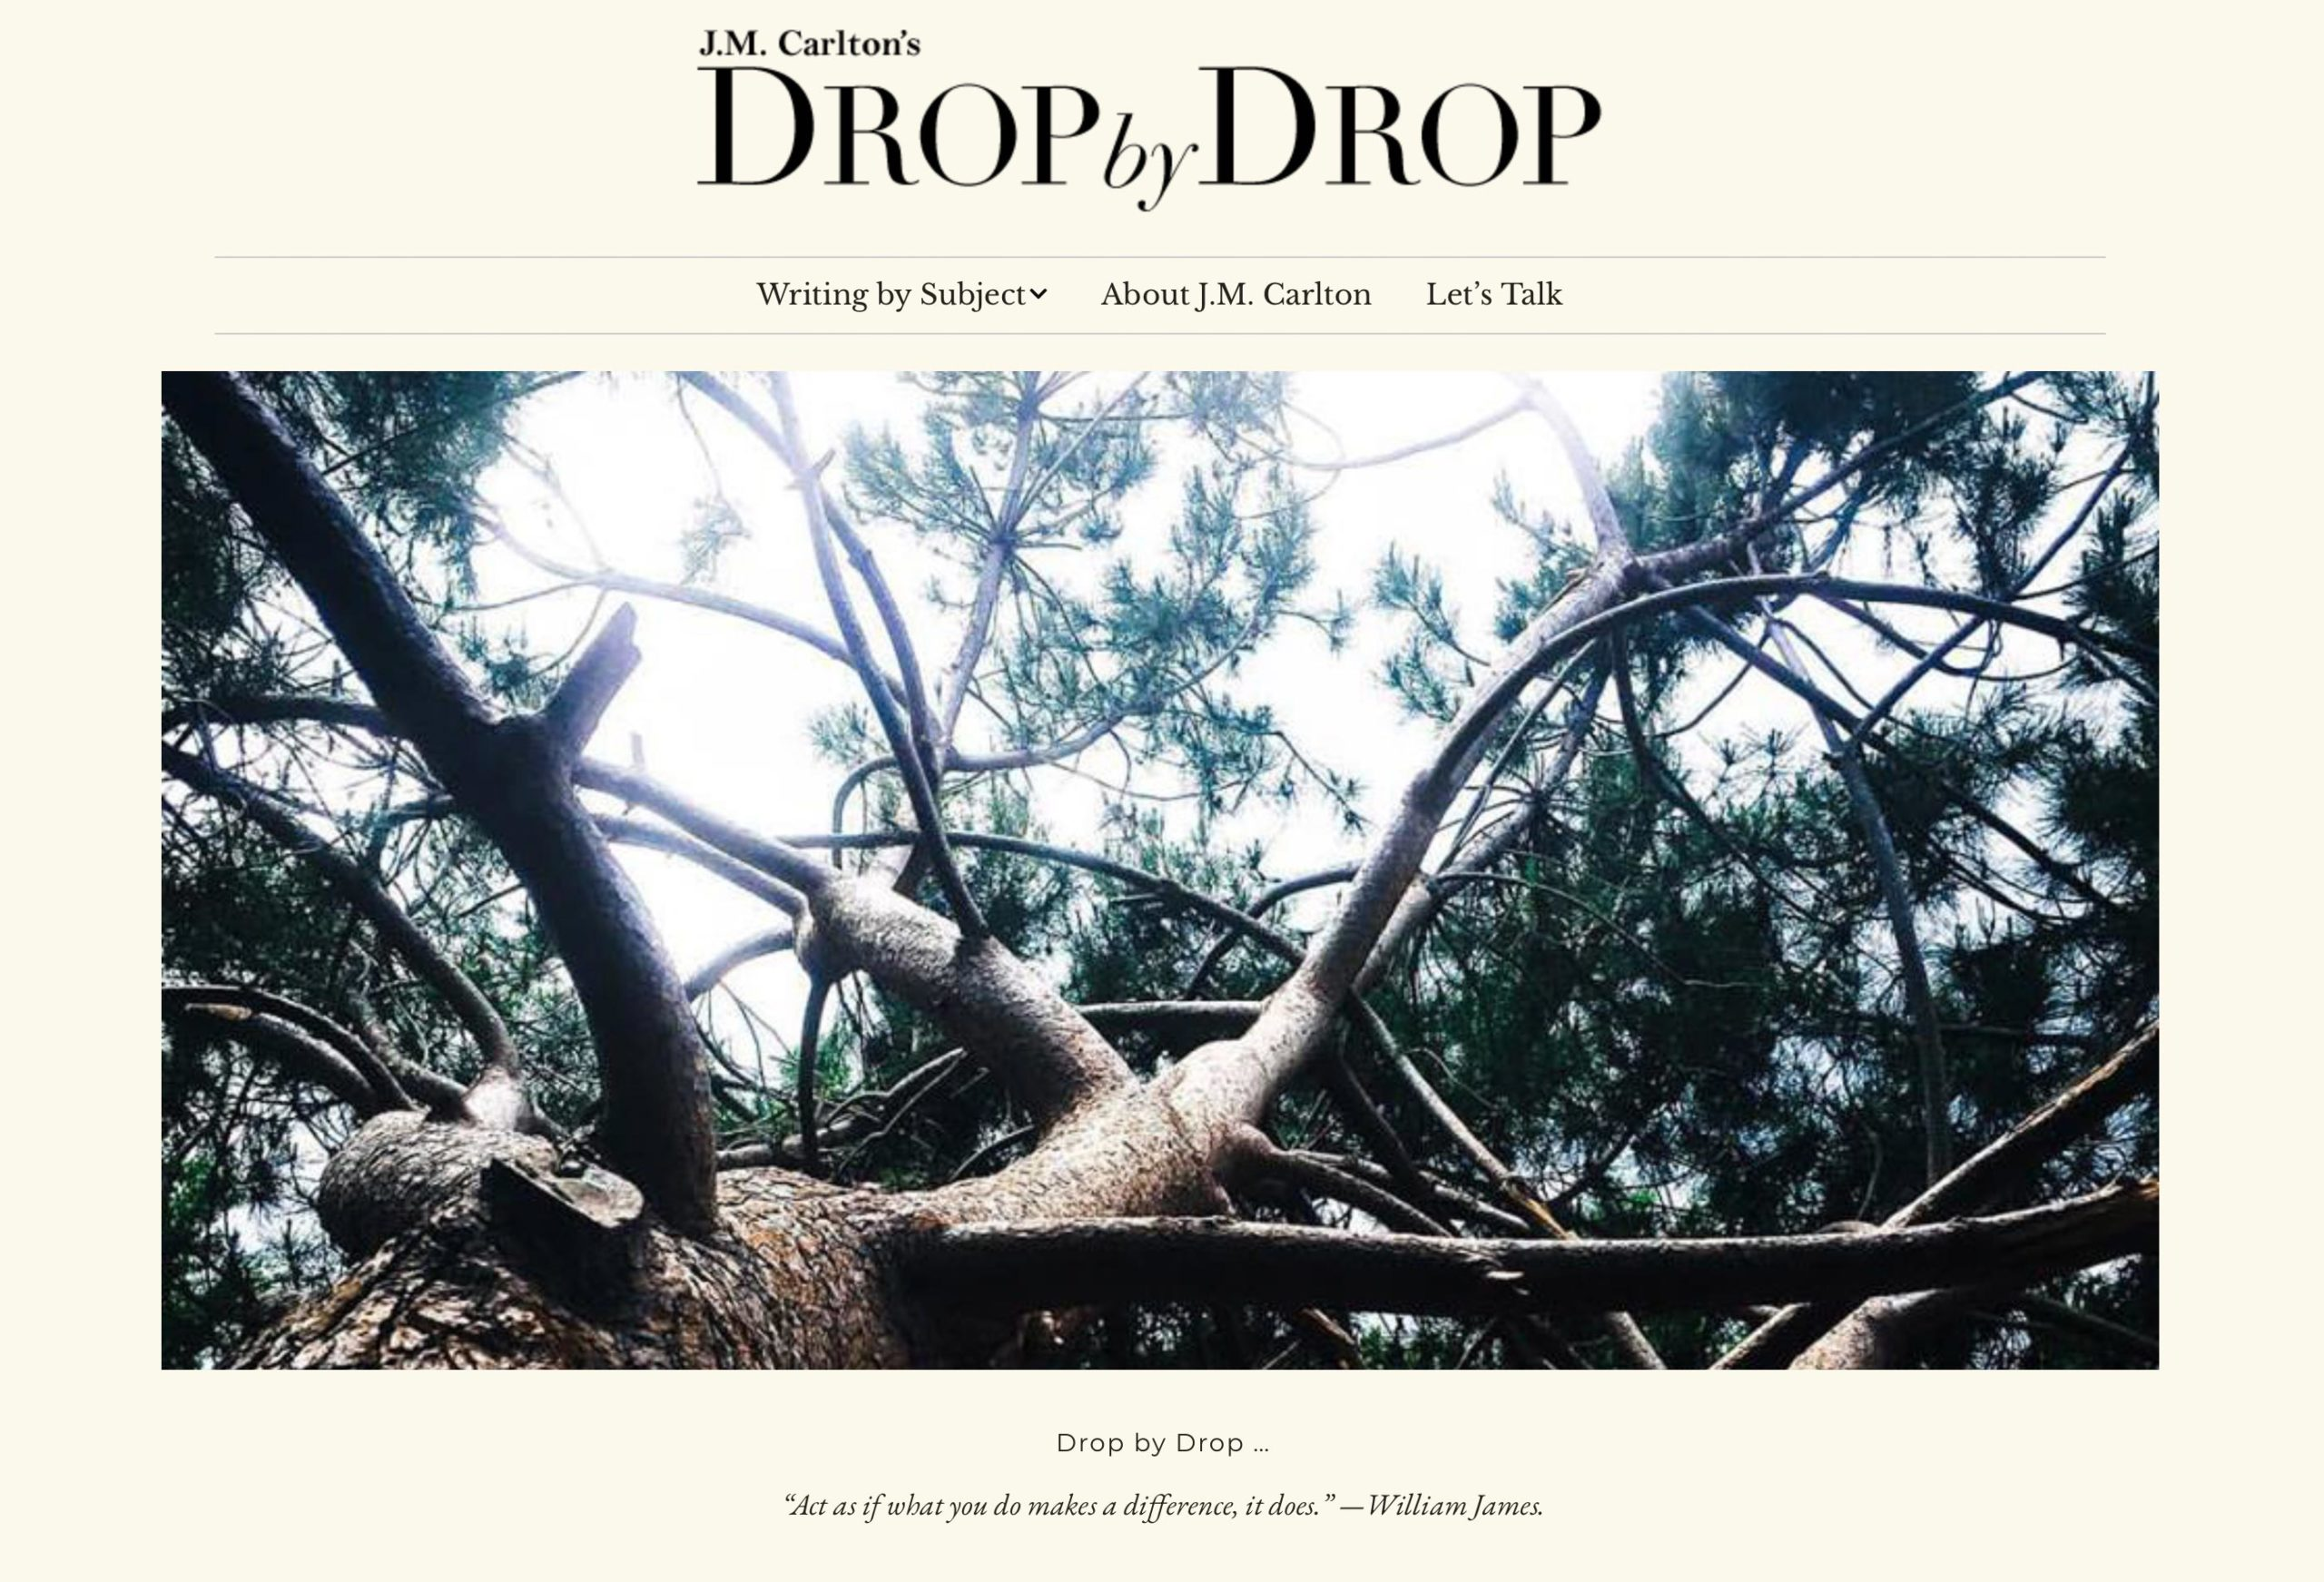 Drop by Drop and Writer J.M. Carlton